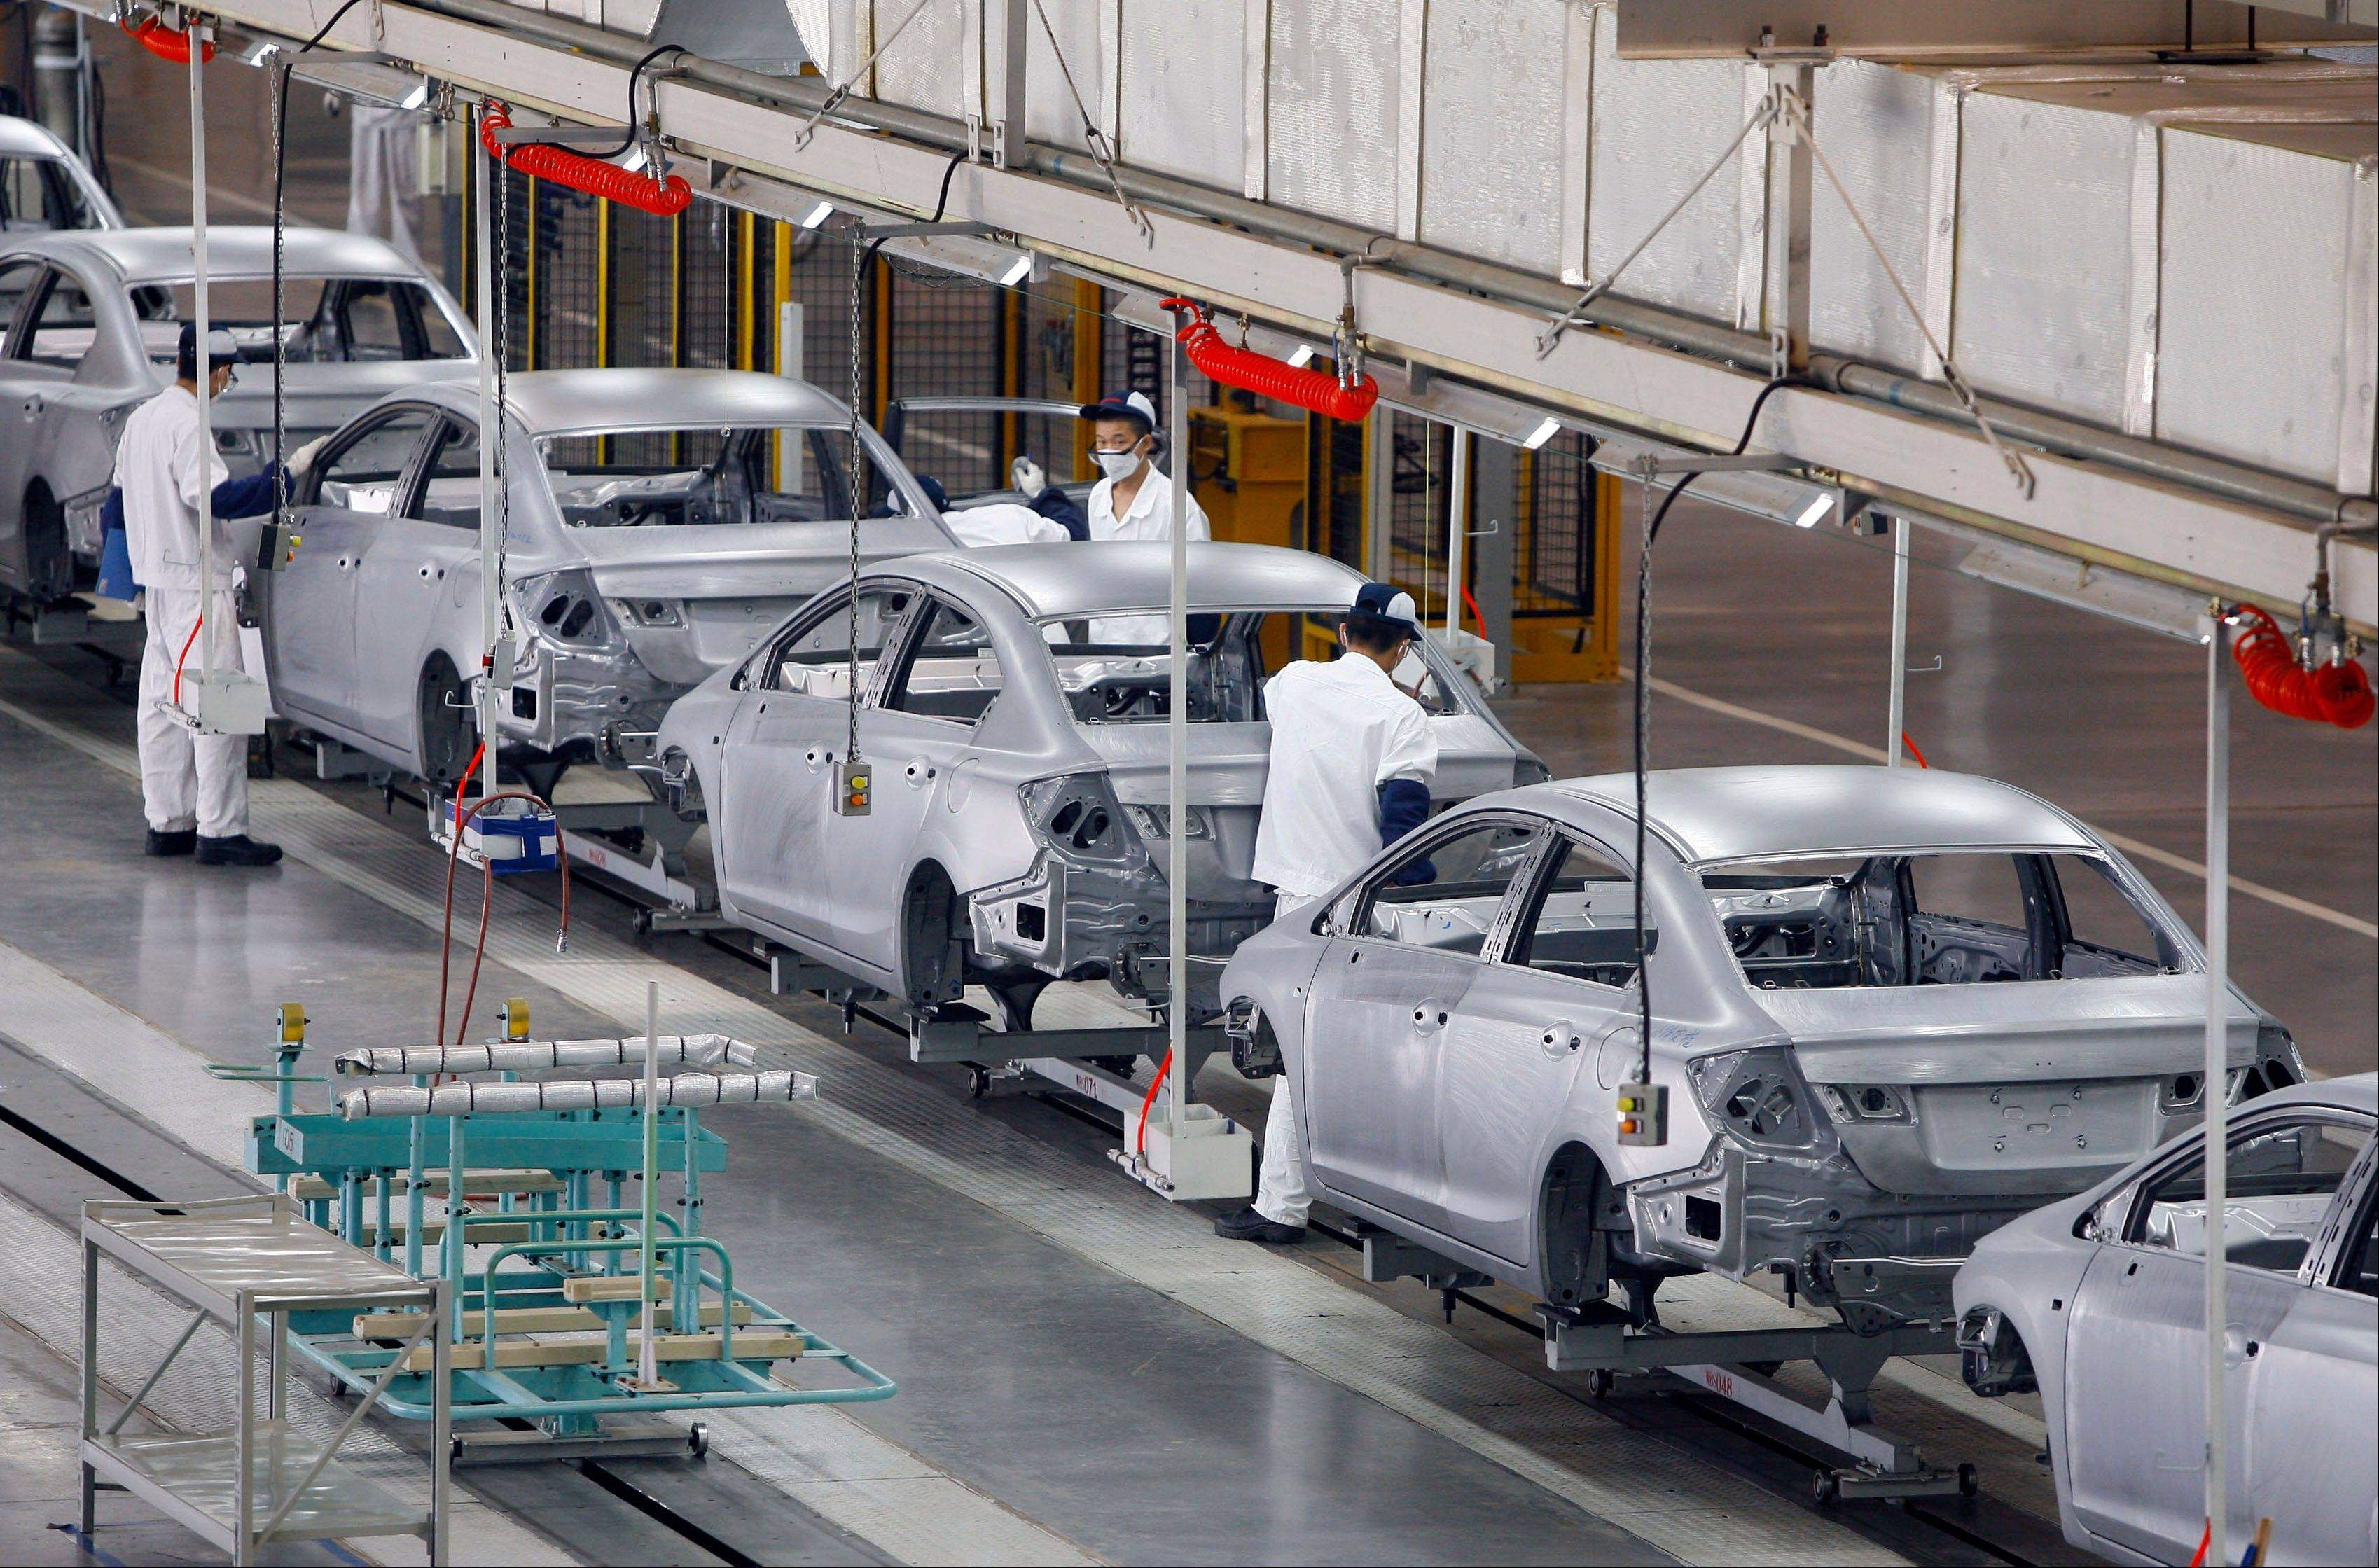 China's vehicle sales grew by an unexpectedly strong 8.3 percent in August despite the country�s economic slowdown. Data released Monday, Sept. 10 by an industry group showed customers bought 1.5 million passenger cars and other vehicles. The growth rate was up slightly from the previous month.